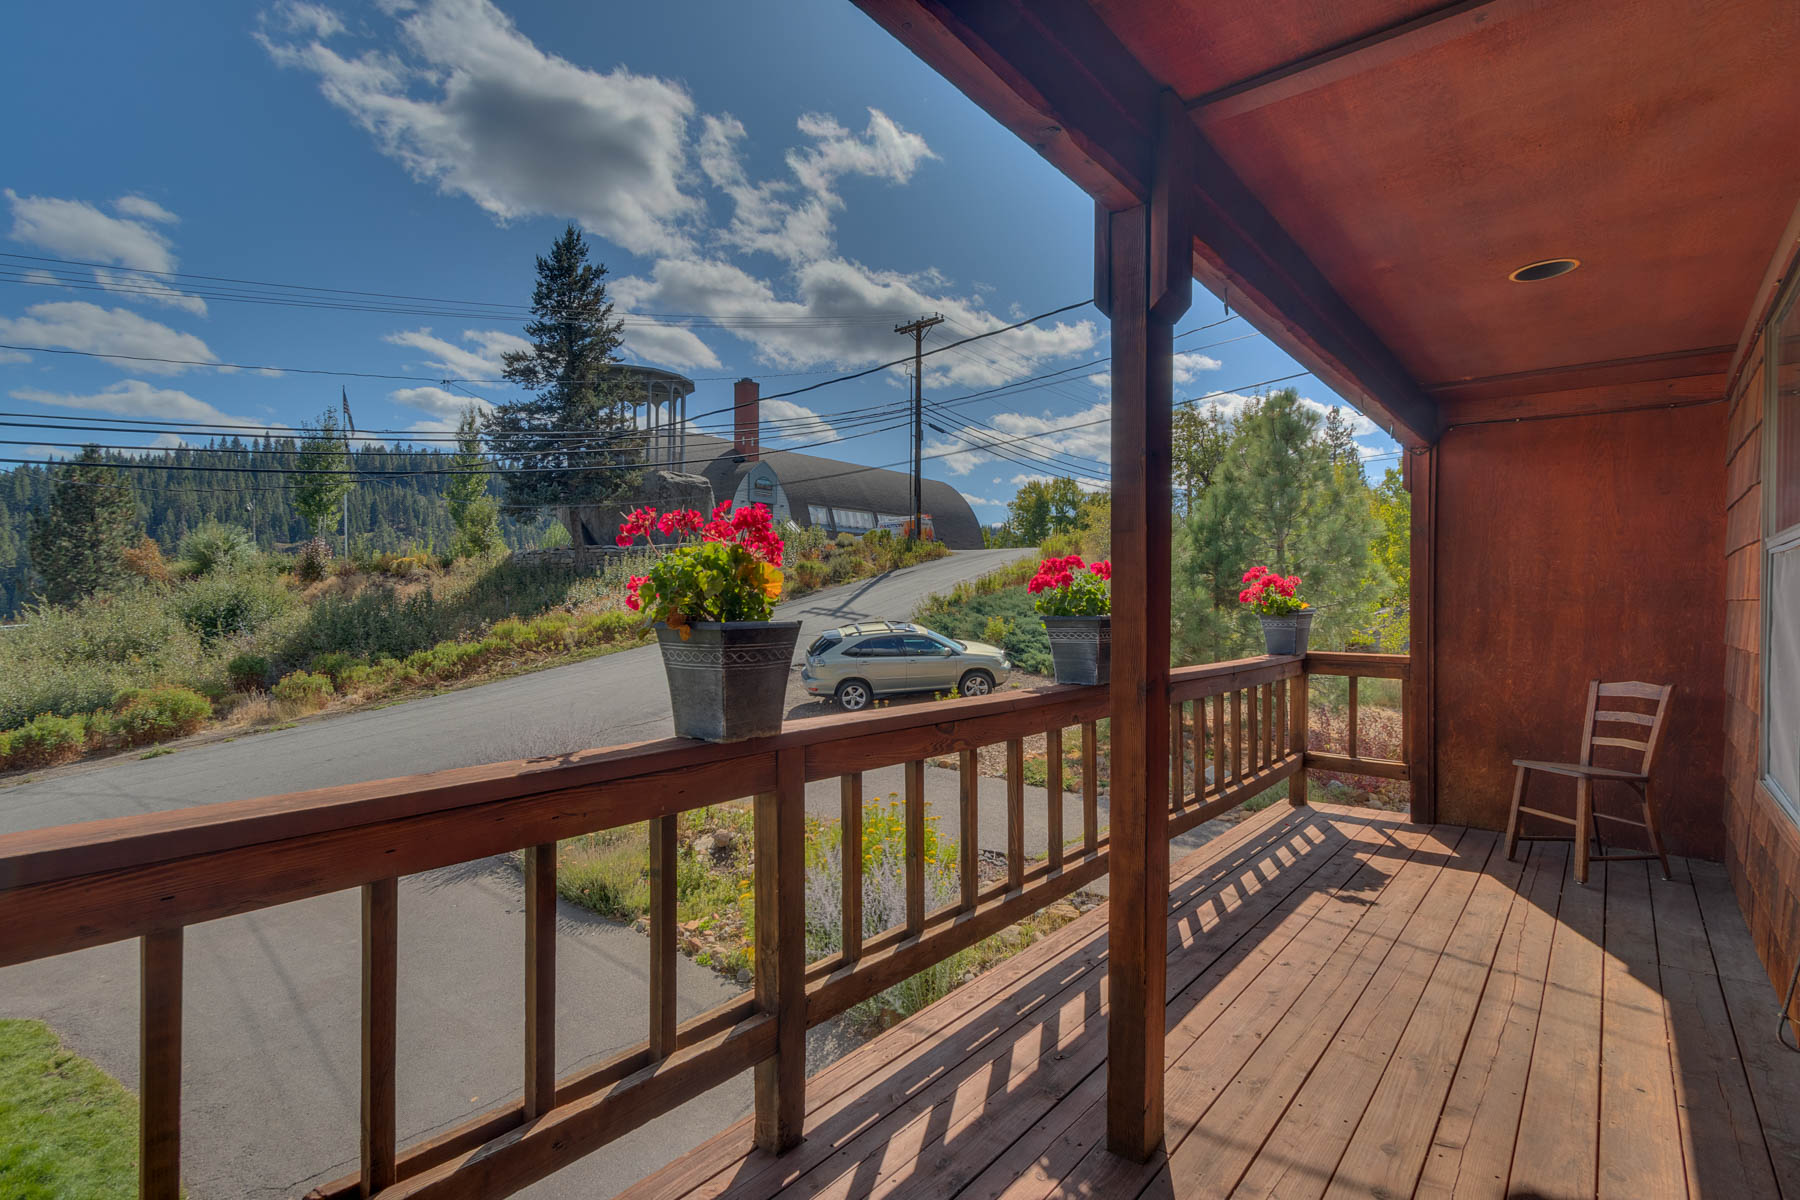 Additional photo for property listing at 10190 Keiser Ave., Truckee, CA 10190 Keiser Ave. Truckee, California 96161 United States